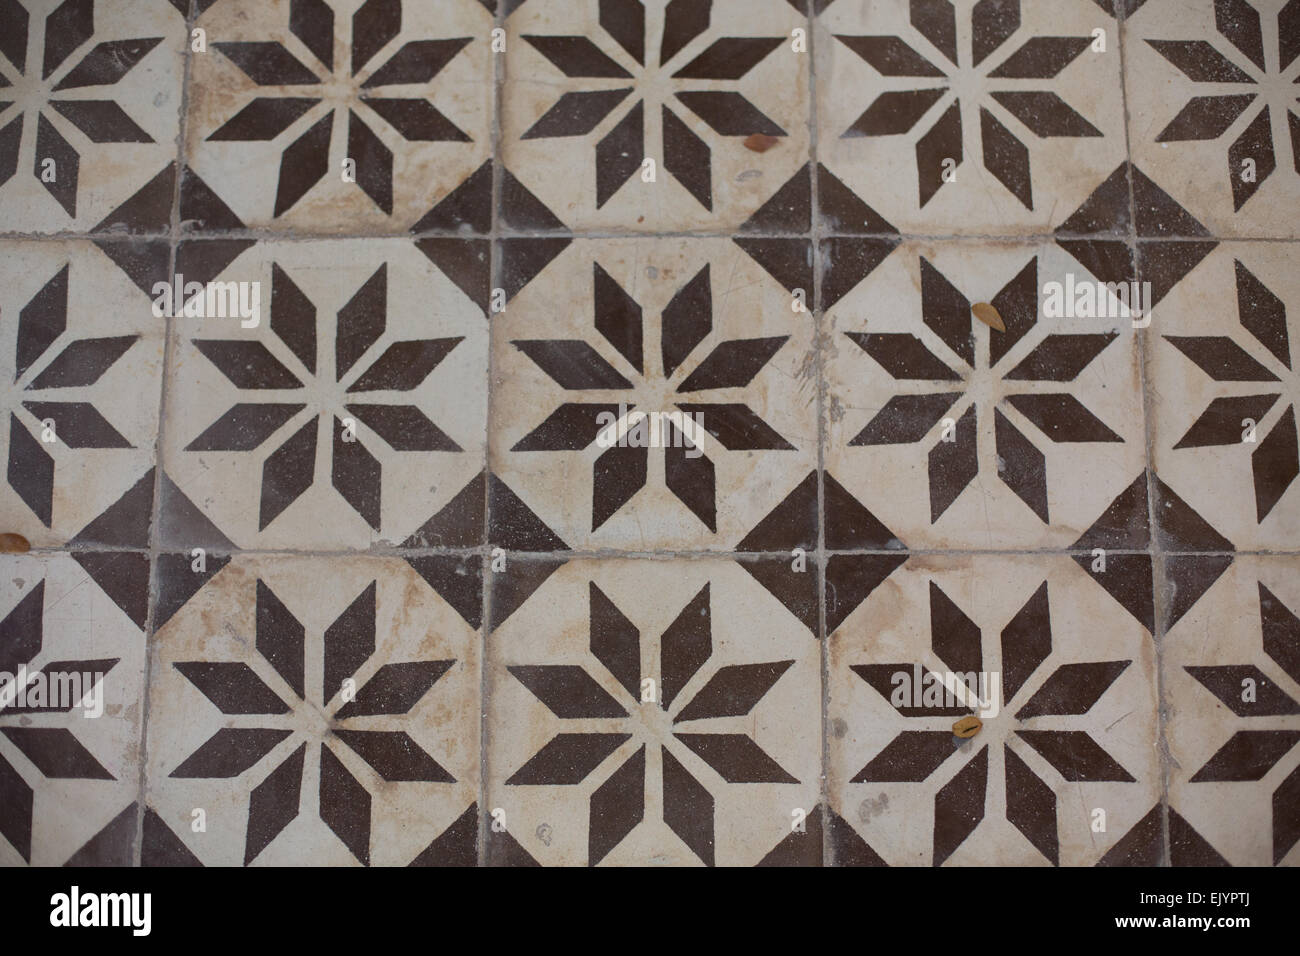 Patterned ceramic floor tiles at wat chaloem phra kiat nonthaburi patterned ceramic floor tiles at wat chaloem phra kiat nonthaburi thailand dailygadgetfo Image collections